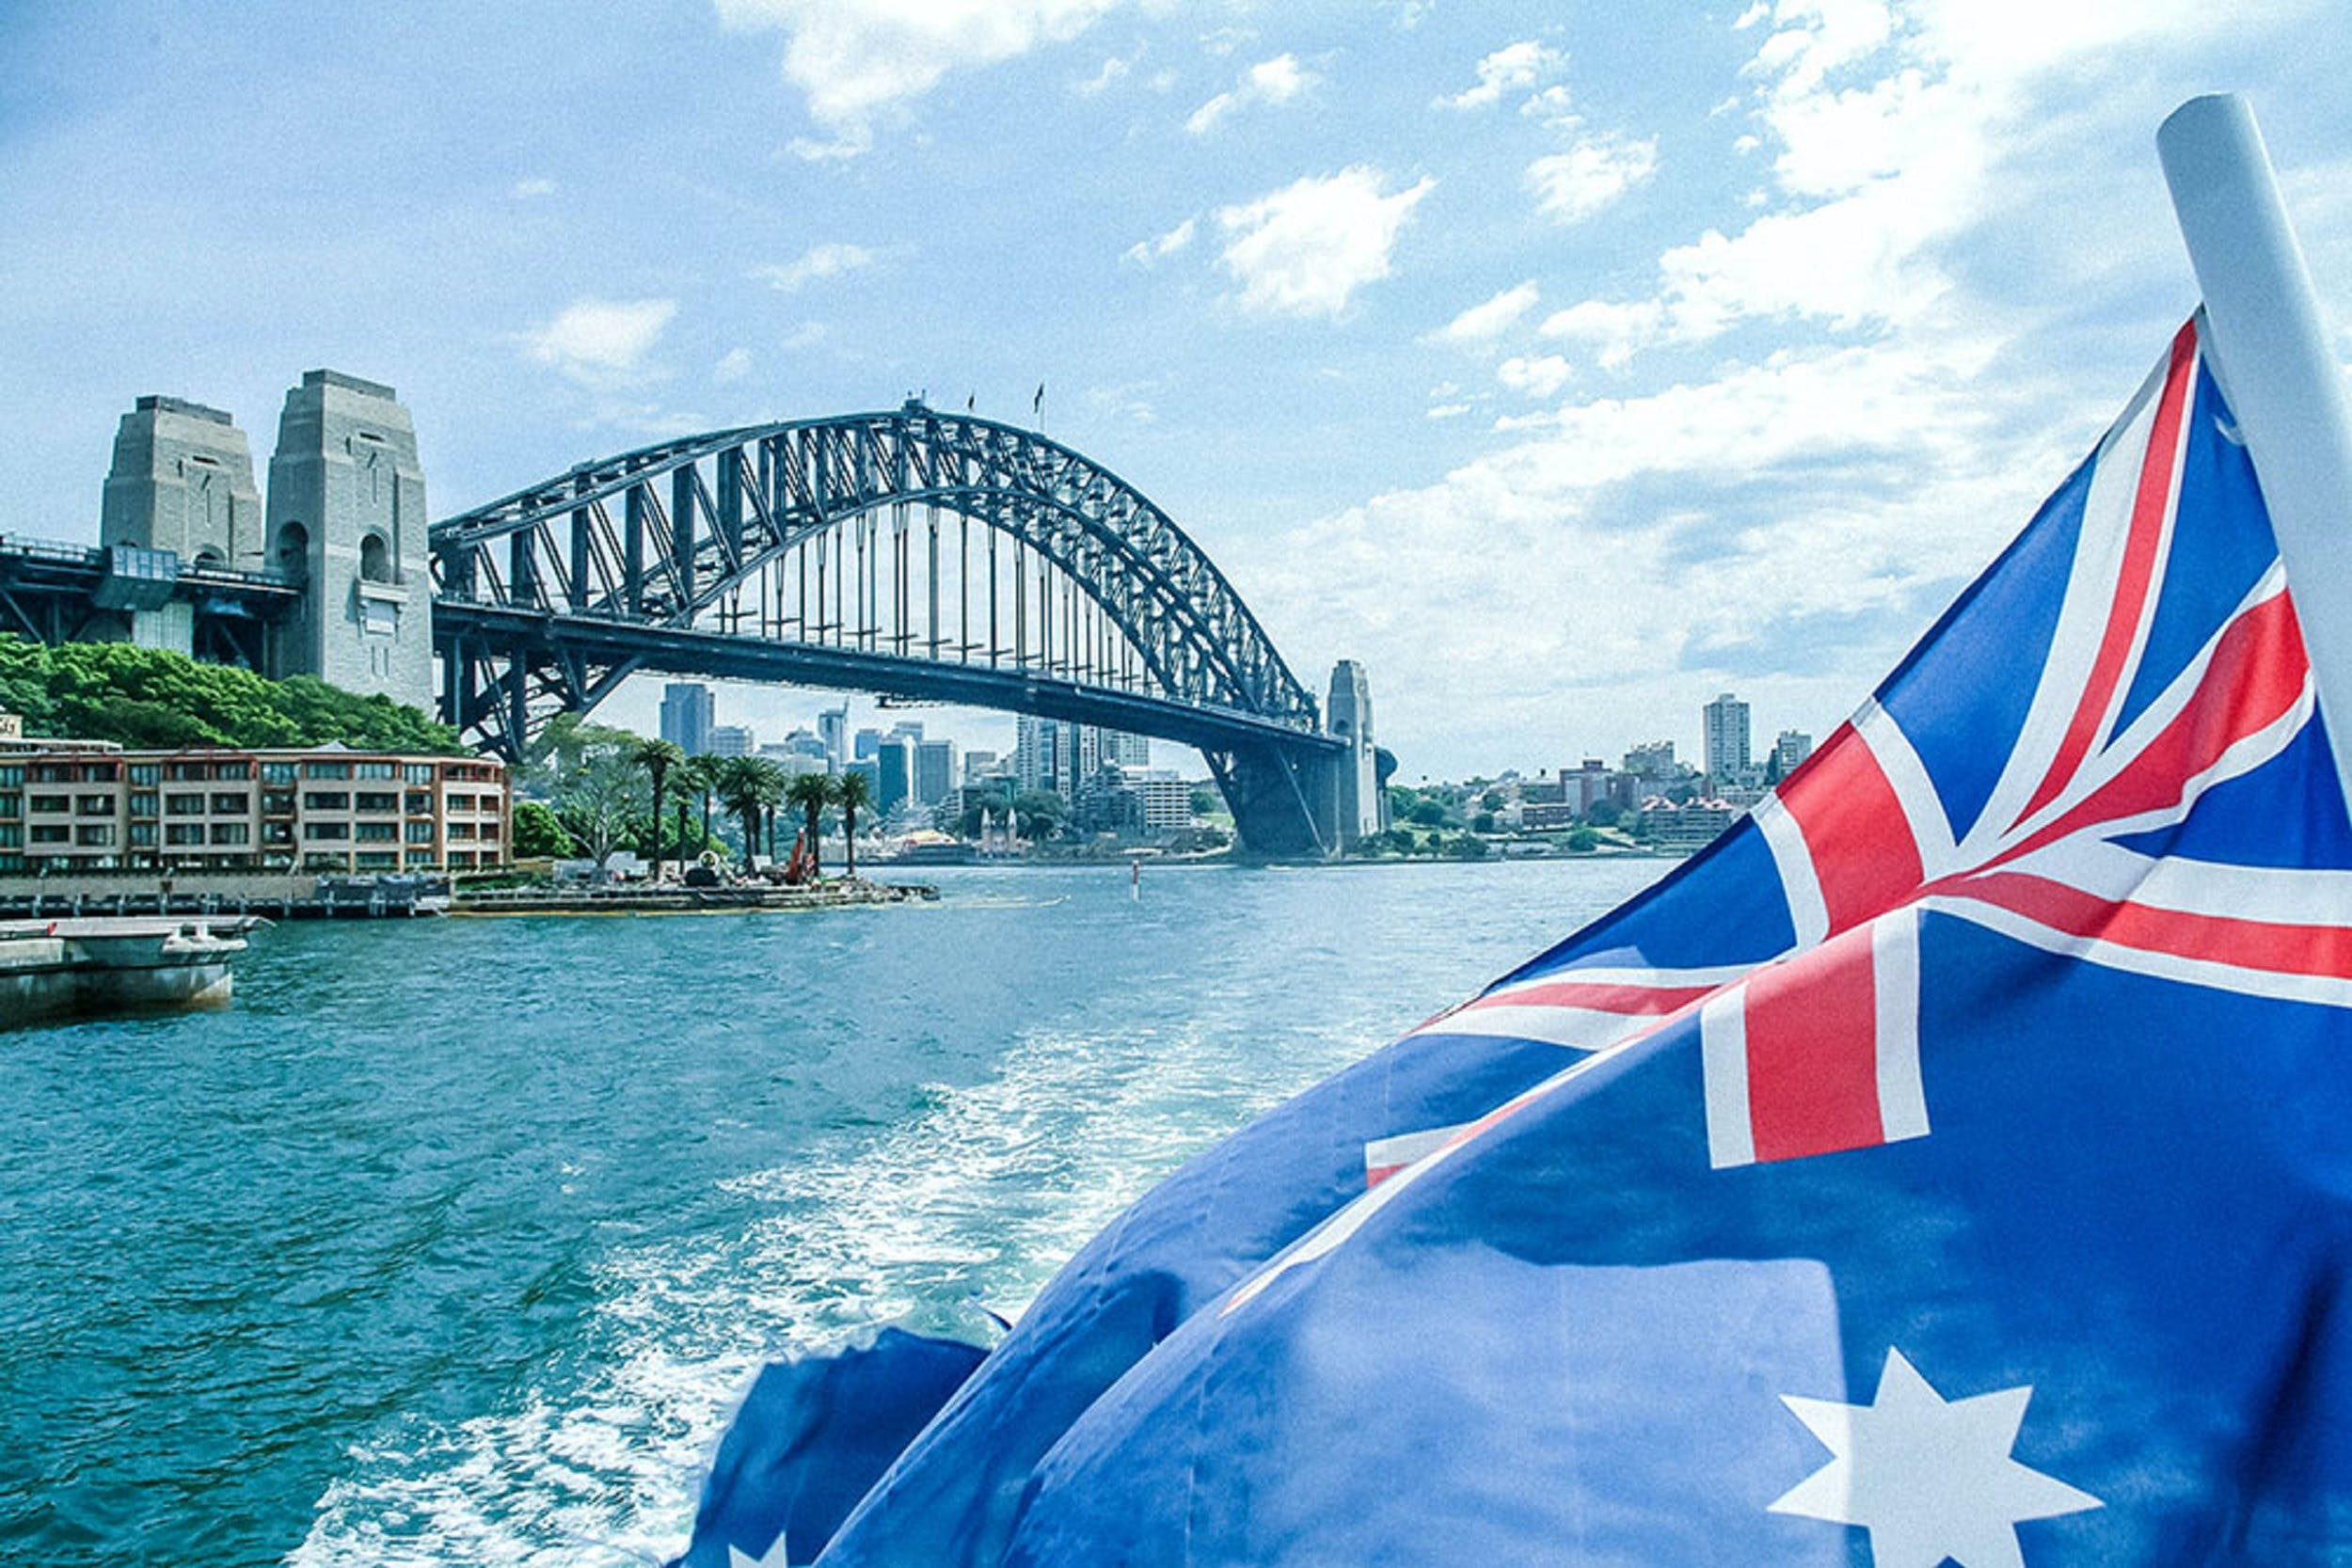 Australia Day Lunch and Dinner Cruises On Sydney Harbour with Sydney Showboats - Accommodation Broken Hill